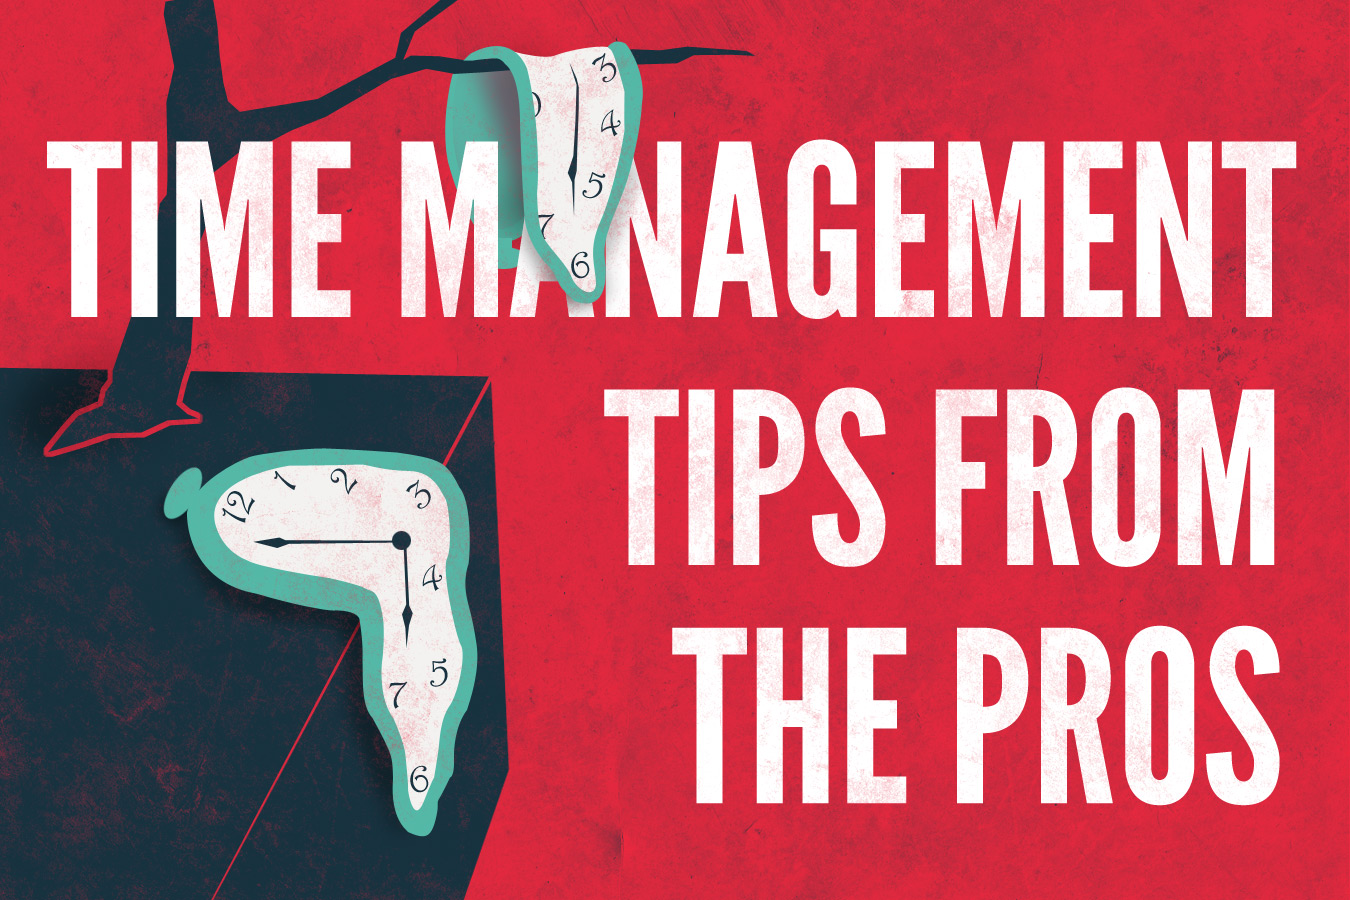 Time Management Tips from the Pros